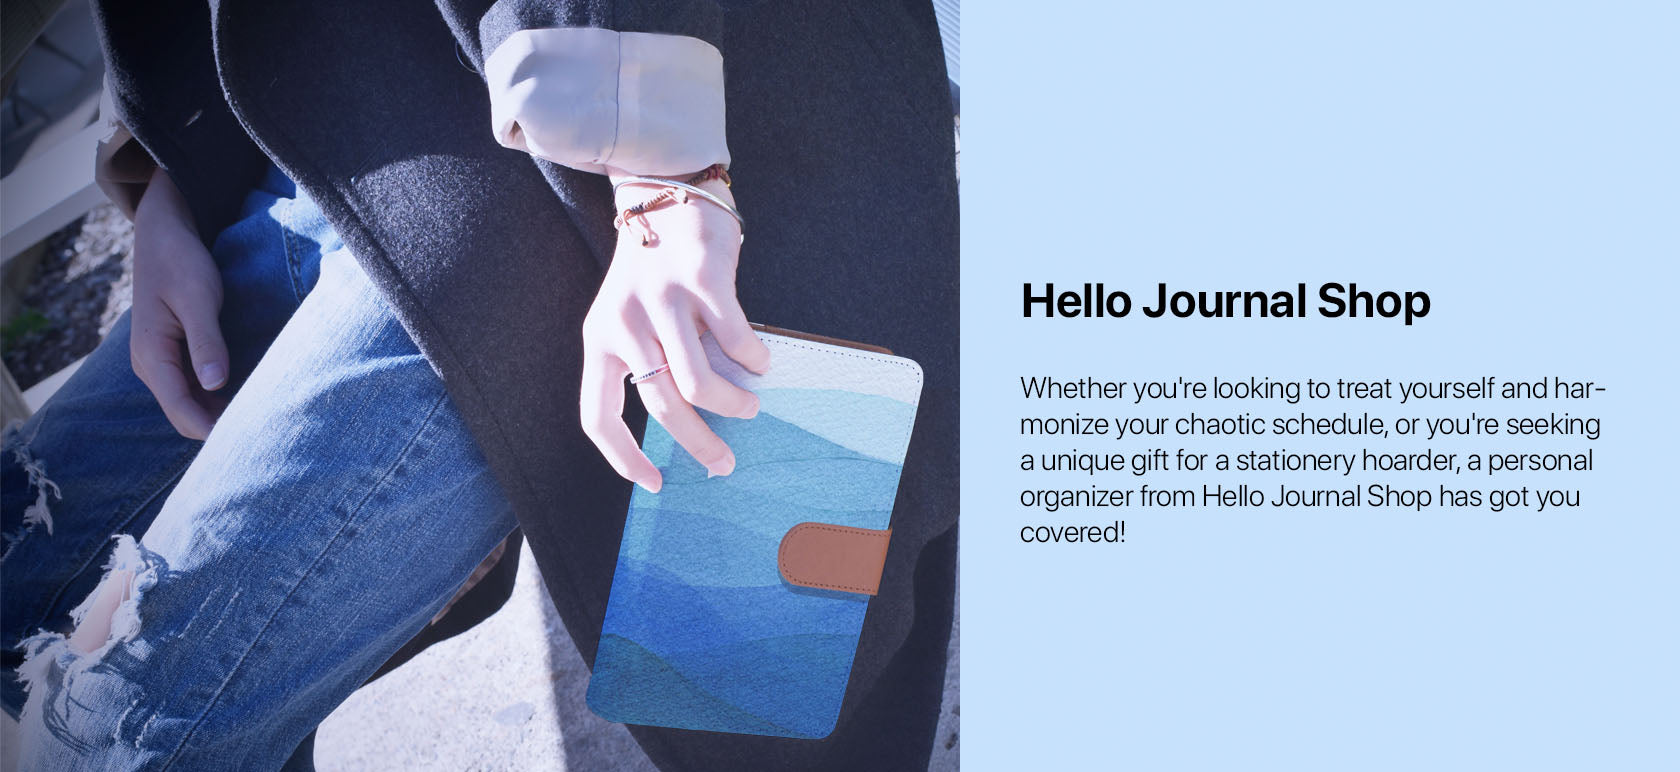 Hello Journal Shop - Whether you're looking to treat yourself and harmonize your chaotic schedule, or you're seeking a unique gift for a stationery hoarder, a personal organizer from Hello Journal Shop has got you covered!